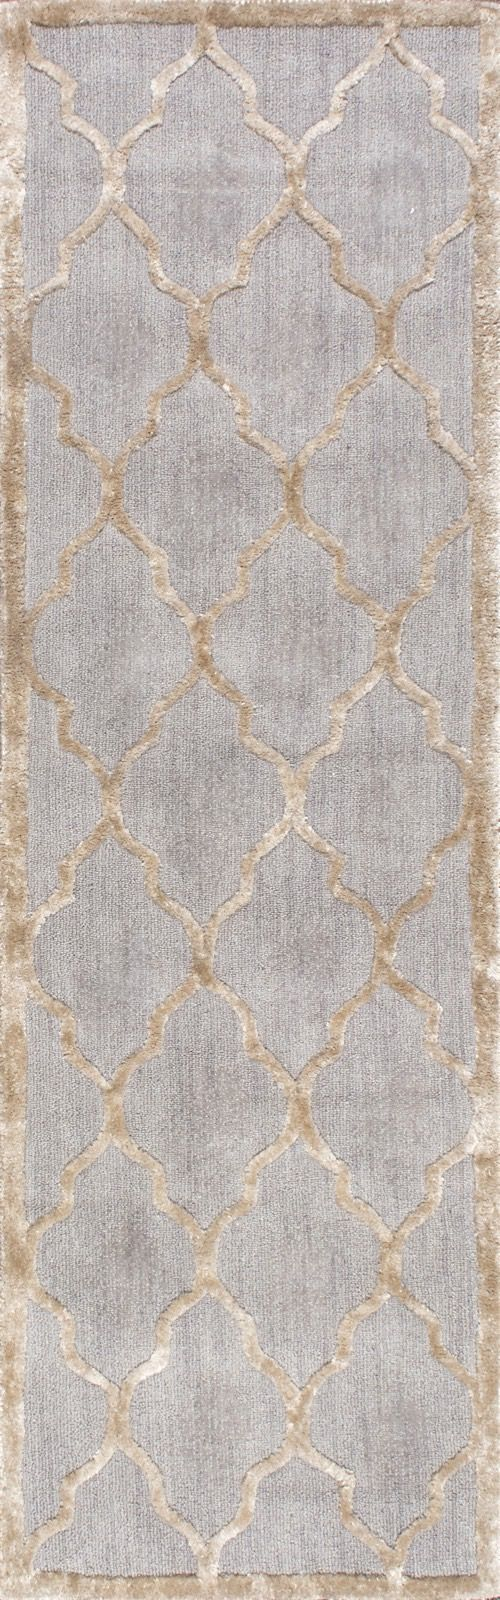 nuloom spradlin contemporary area rug collection